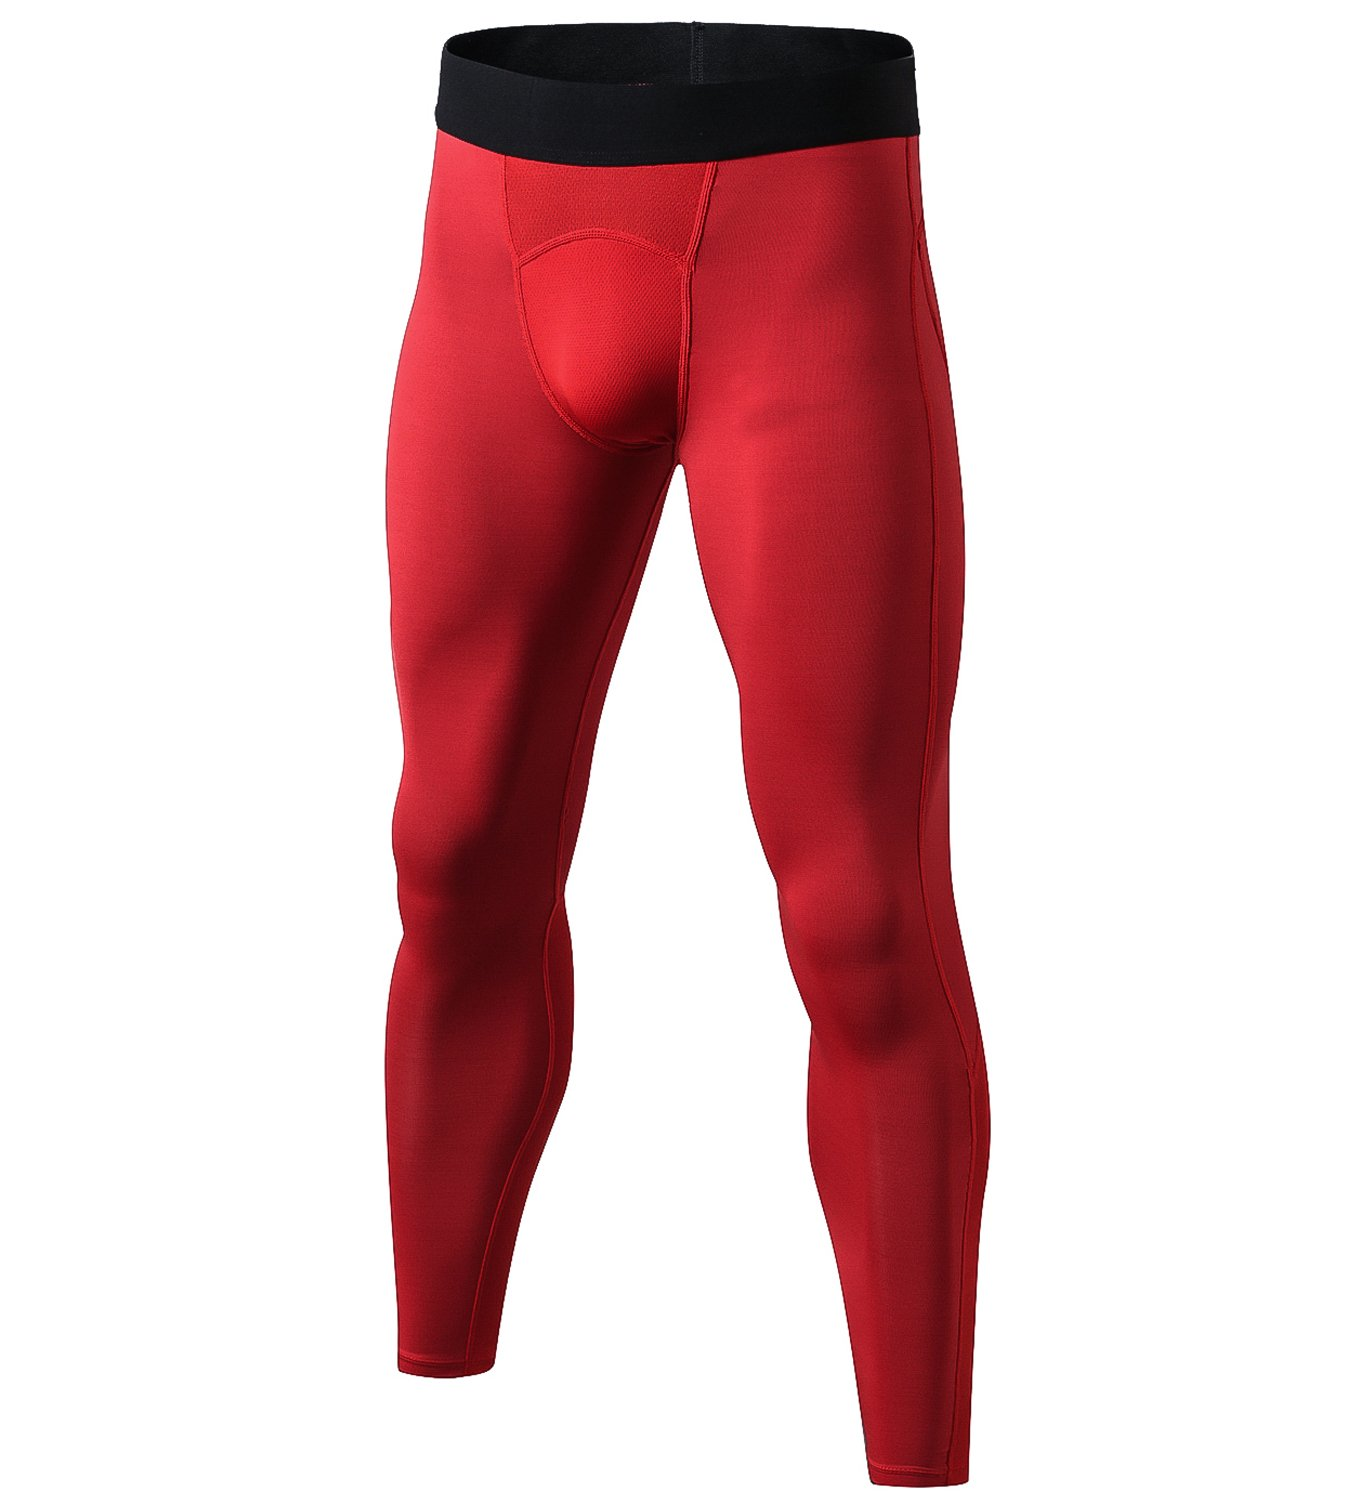 Lavento Men's Compression Pants Mesh Cool Dry Workout Tights (1 Pack-1040 Red, Small)